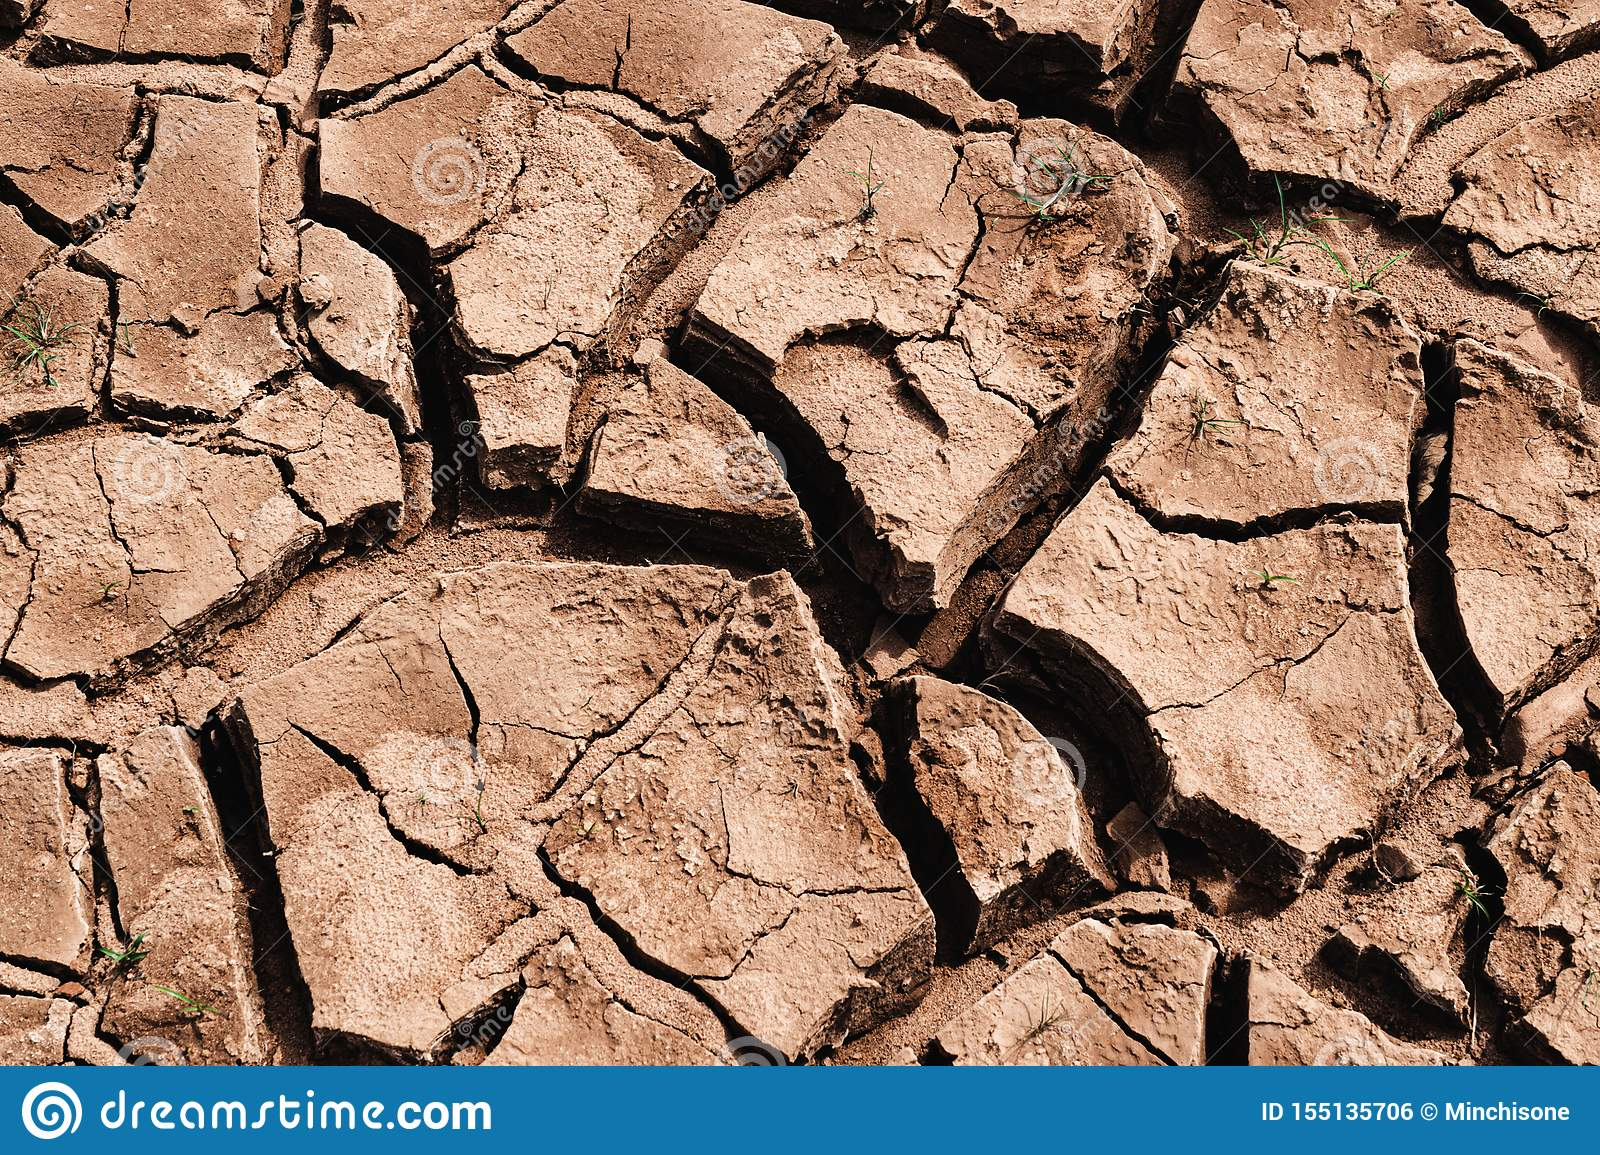 The desert global warming concept. global climate change cause trigger droughts